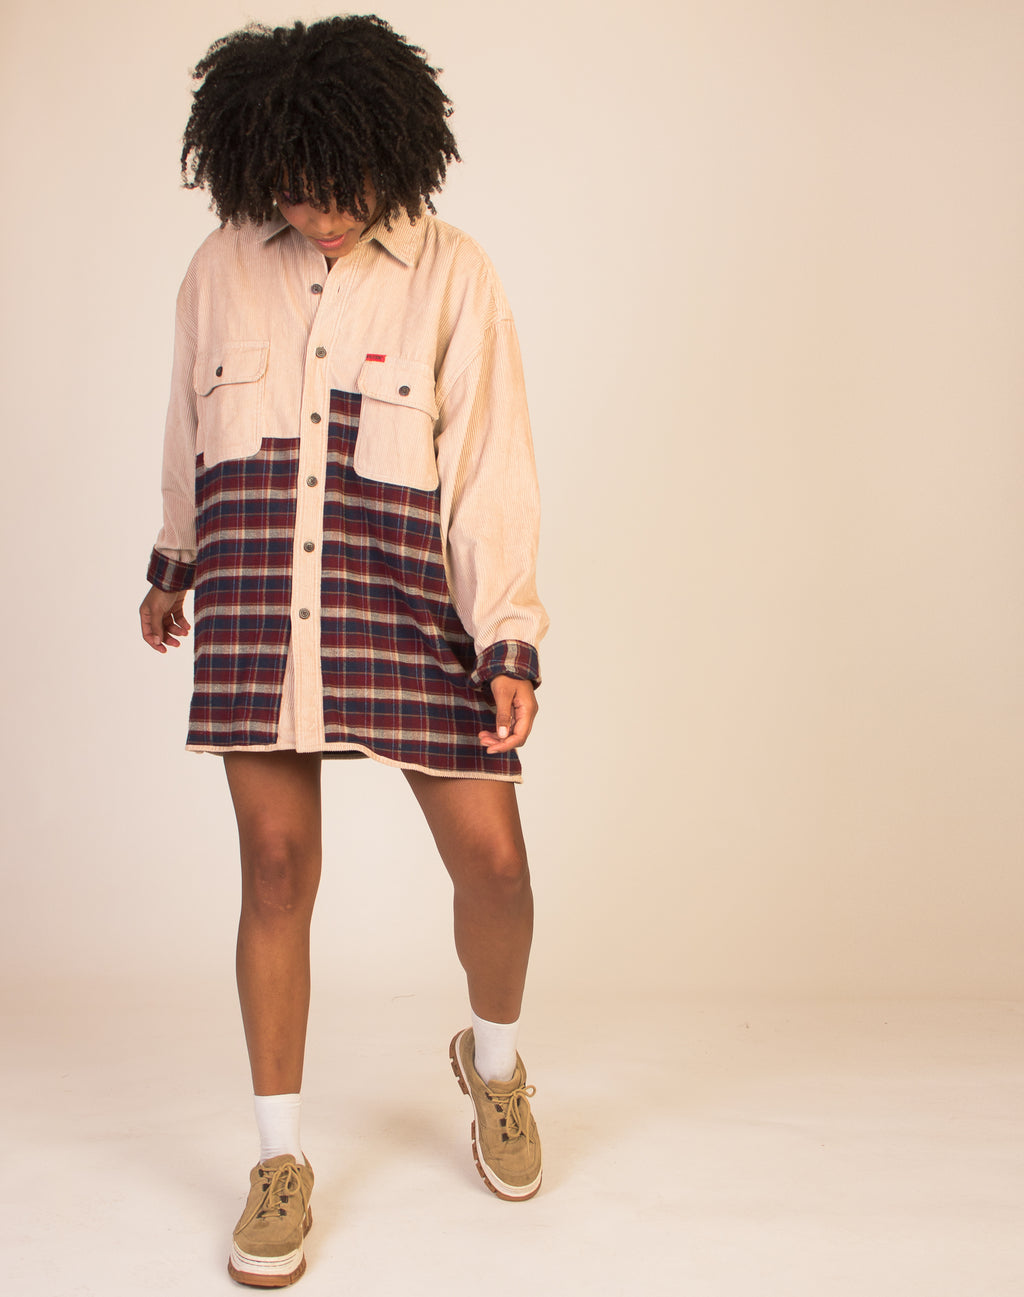 CORD AND FLANNEL OVERSIZED LUMBERJACK SHIRT